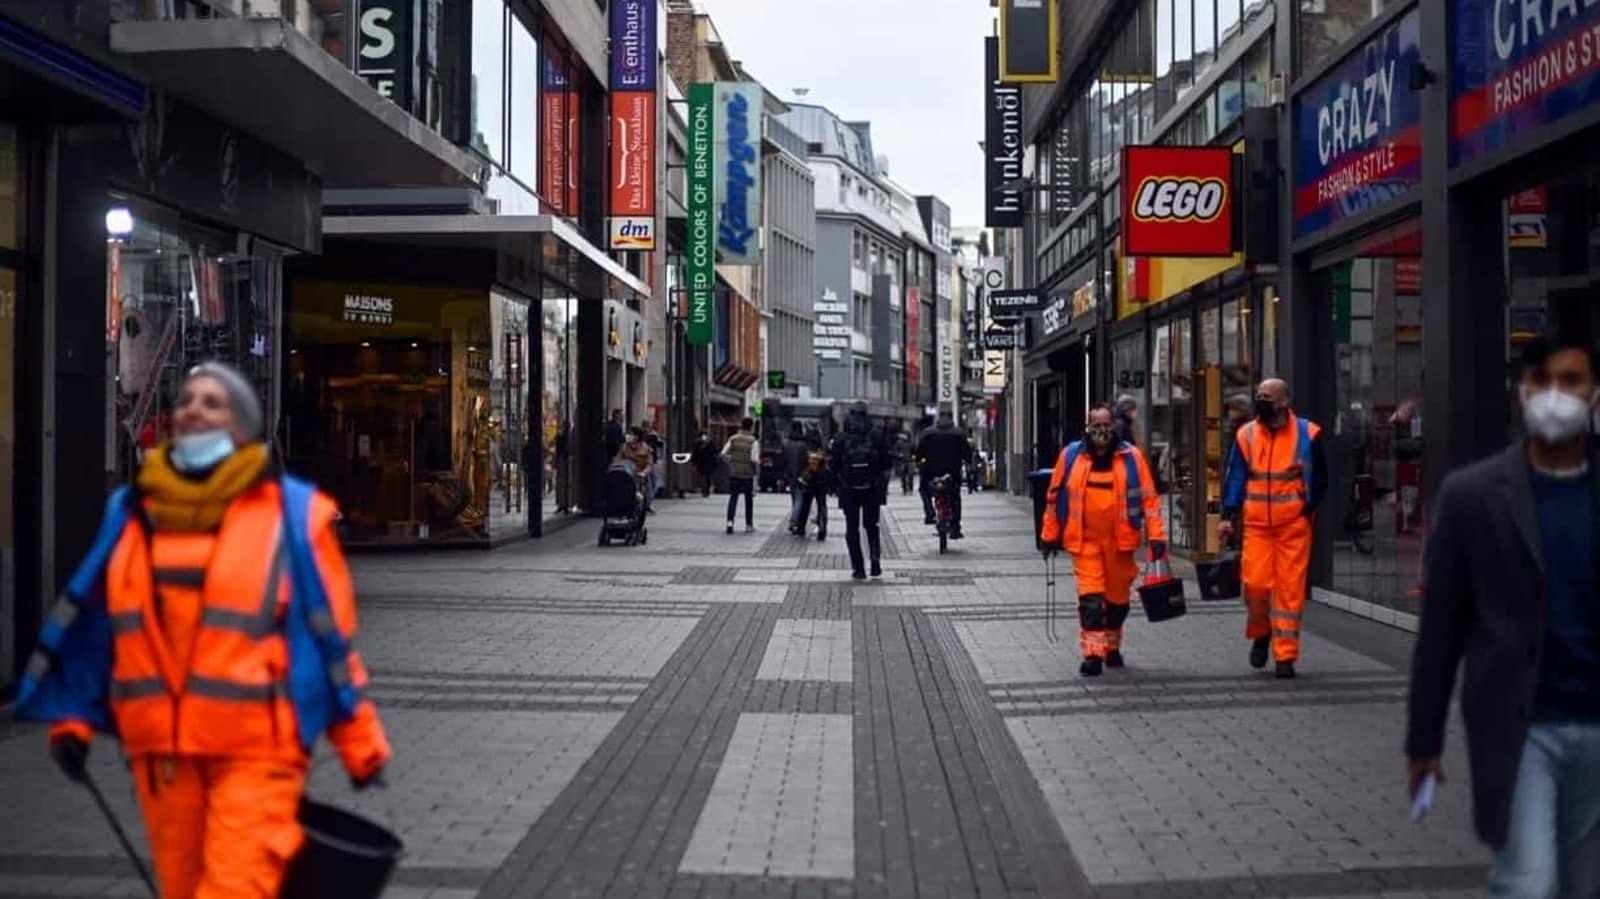 Covid-19: Violent confrontation ensues between police, anti-lockdown protesters in Germany